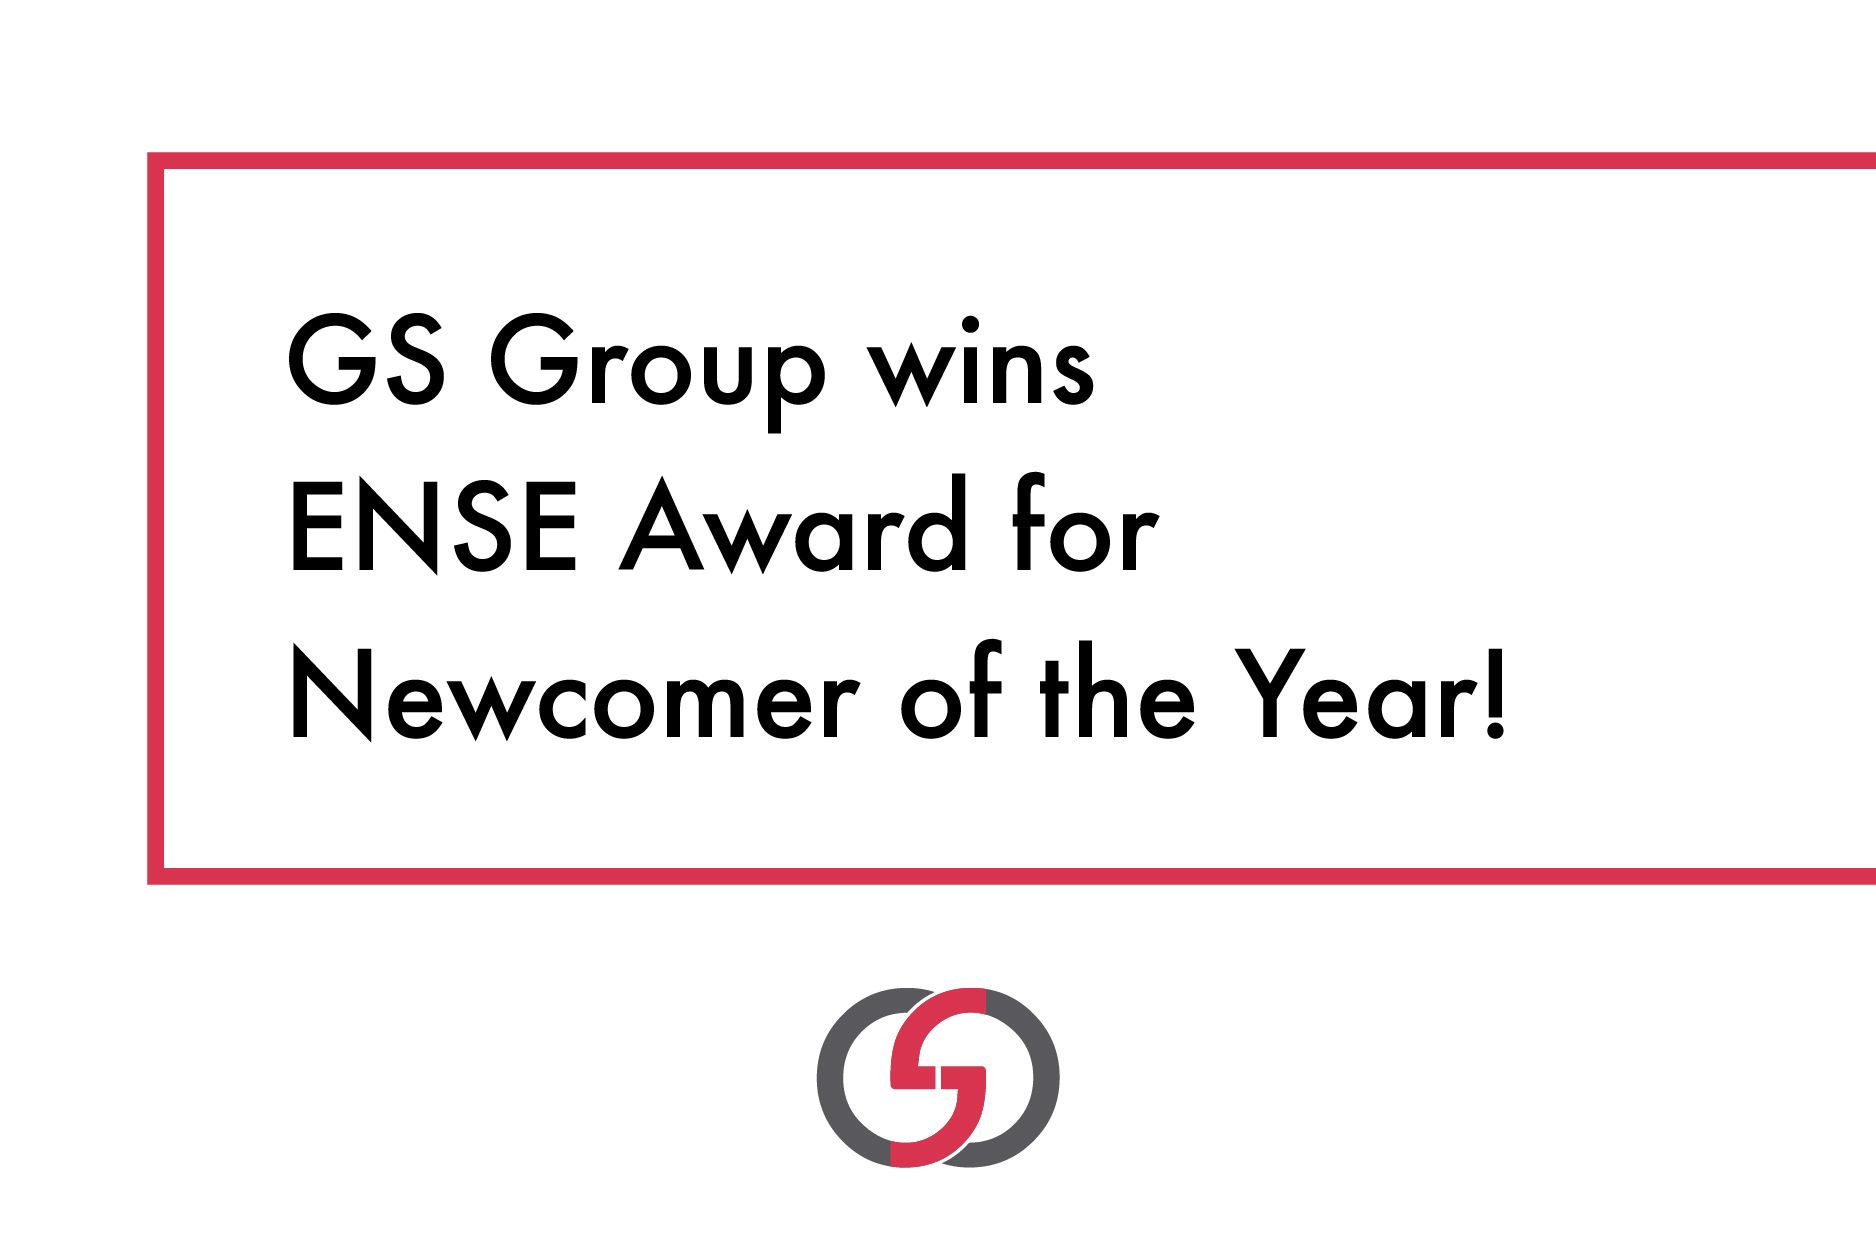 GS Group wins ENSE Newcomer of the Year award!